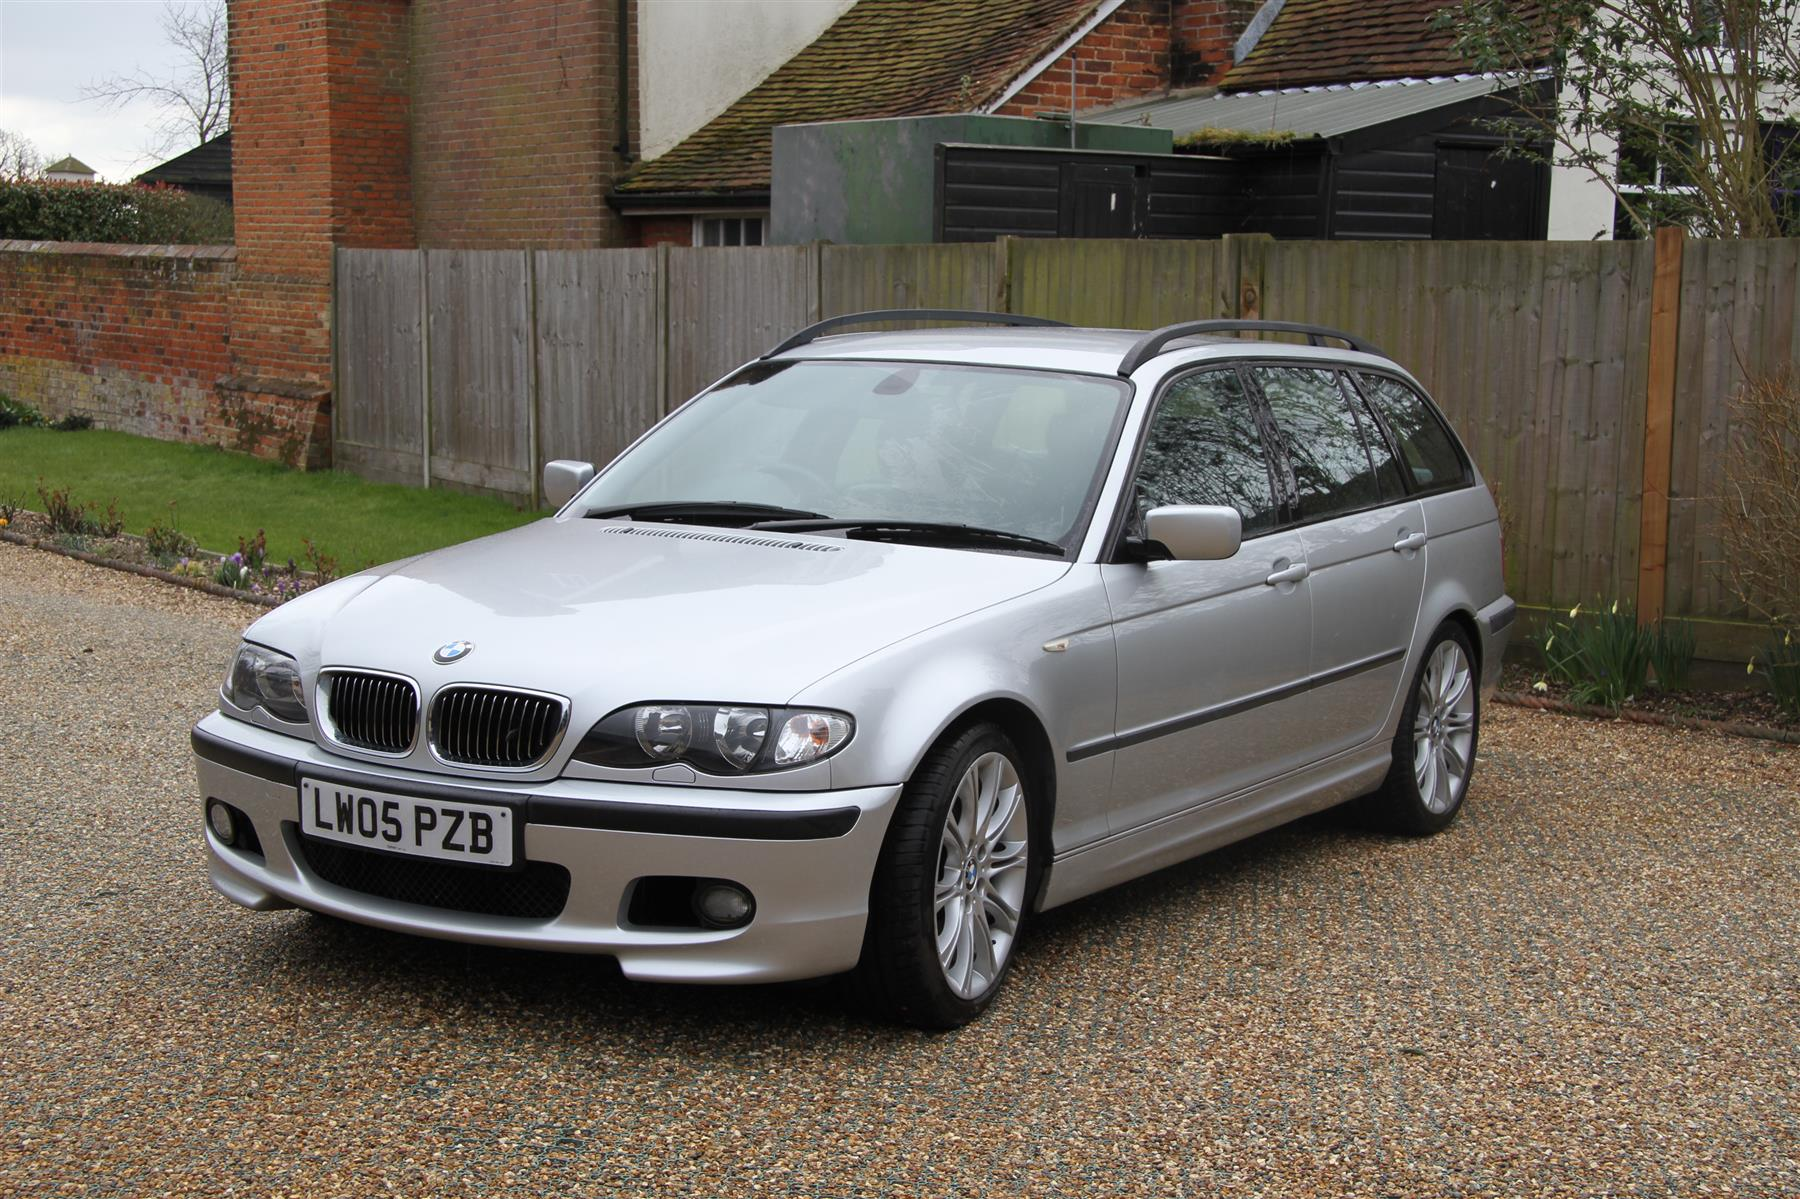 BMW 3 series 330d 2005 photo - 4